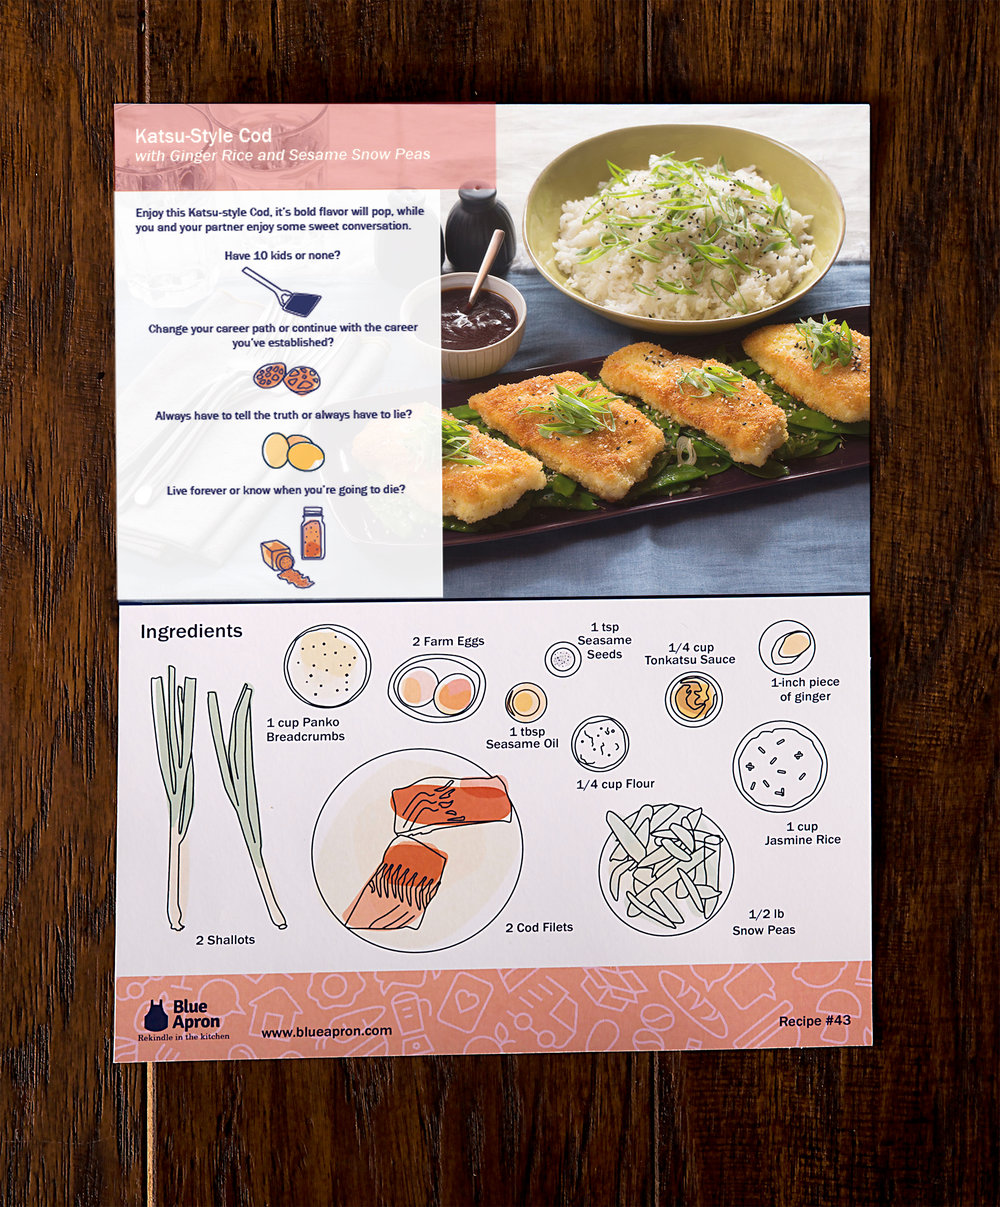 The recipe card includes conversation starters and simple instructions so the couple can connect while cooking.